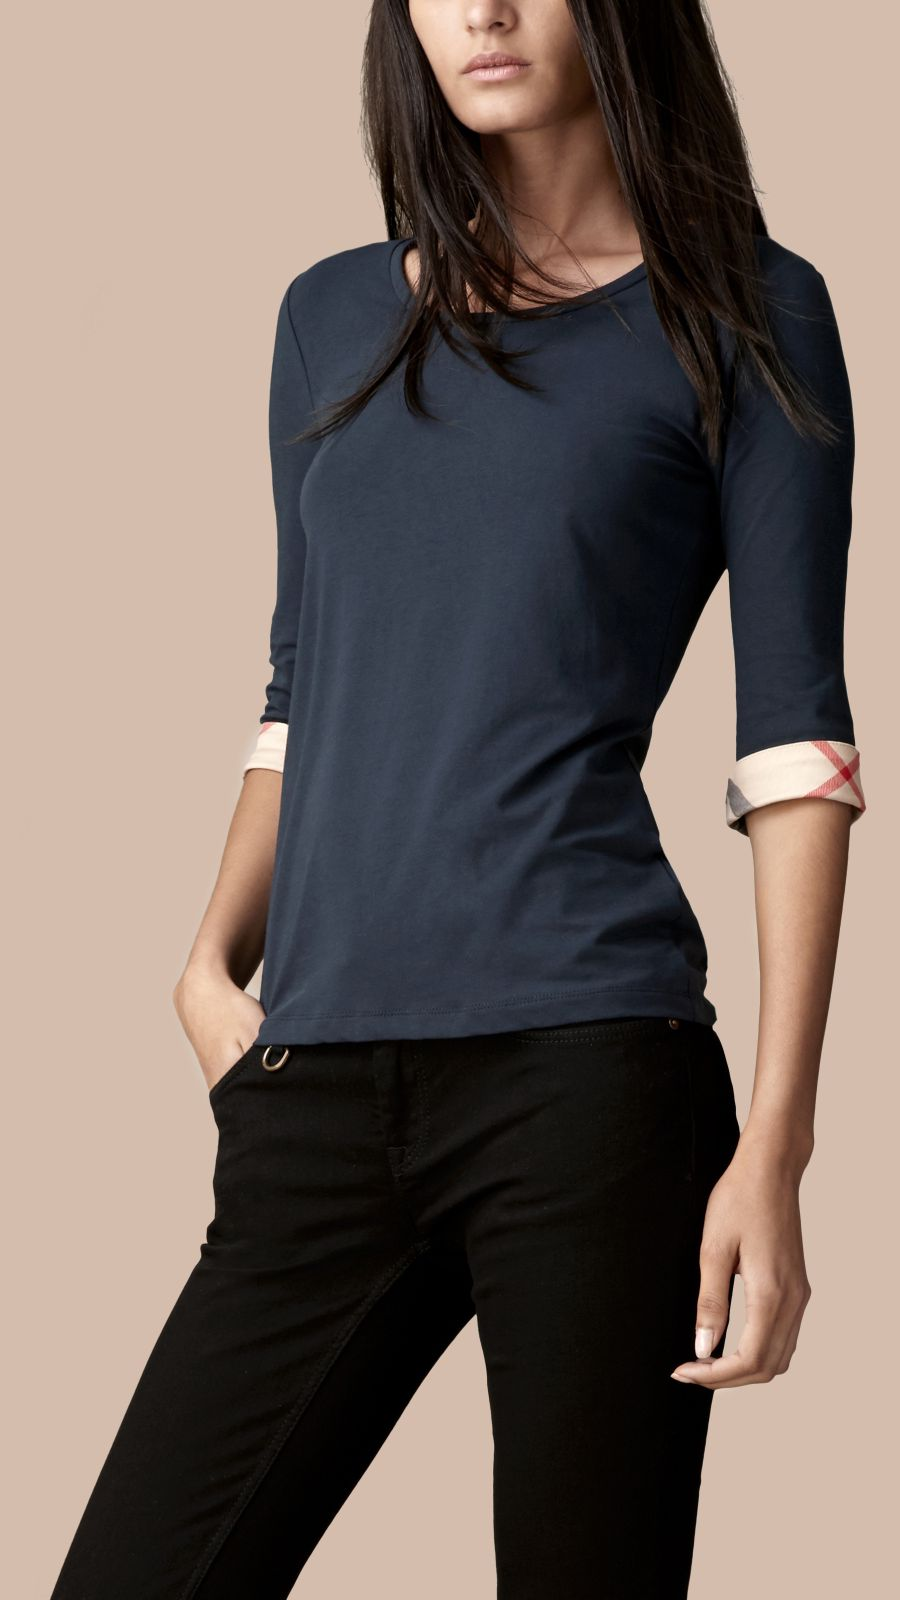 Navy Check Cuff Stretch-Cotton Top Navy - Image 3